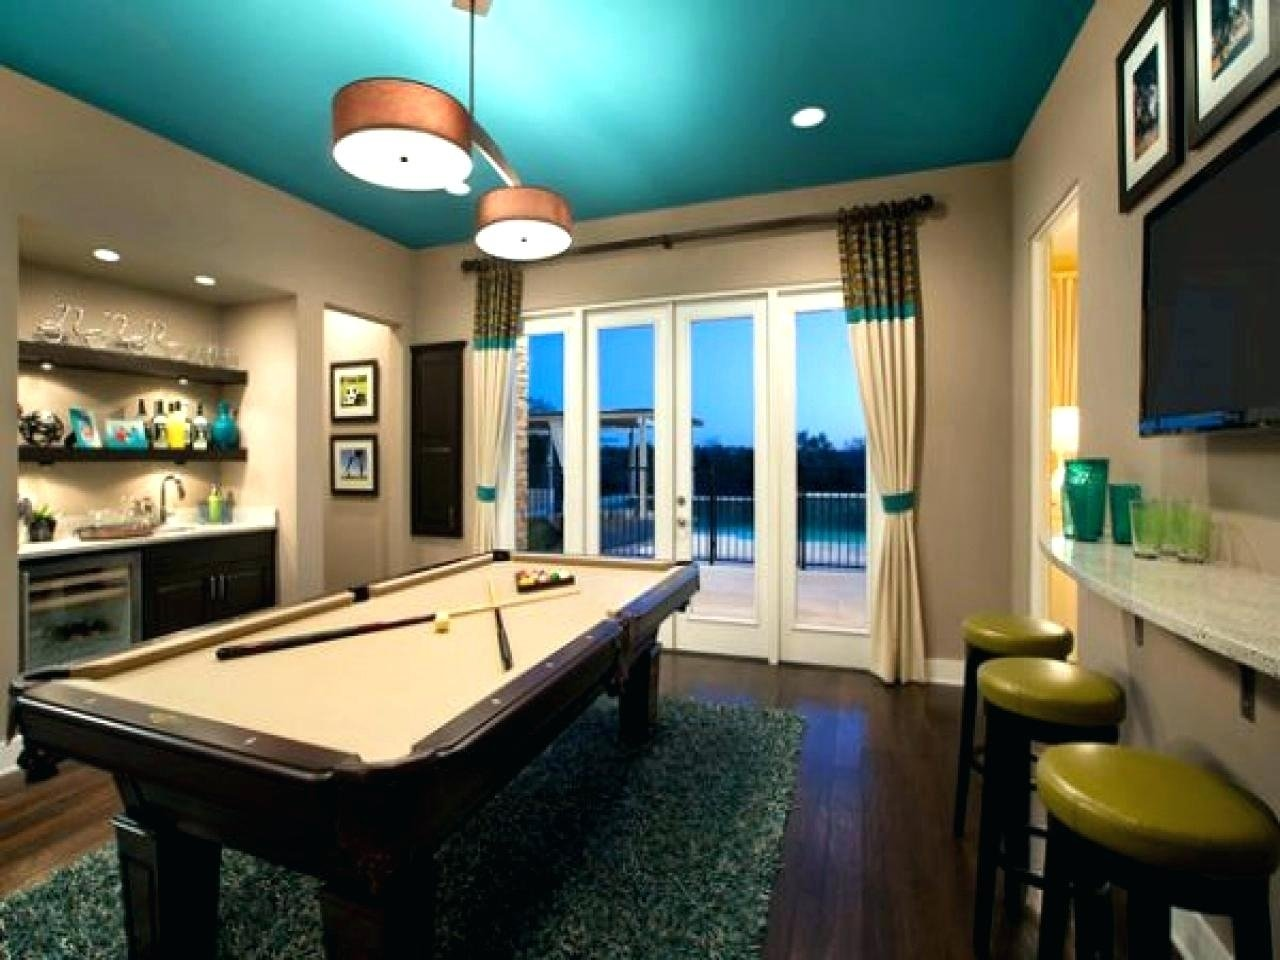 10 Gorgeous Game Room Ideas For Adults articles basement game room decorating ideas tag for basements games 2020